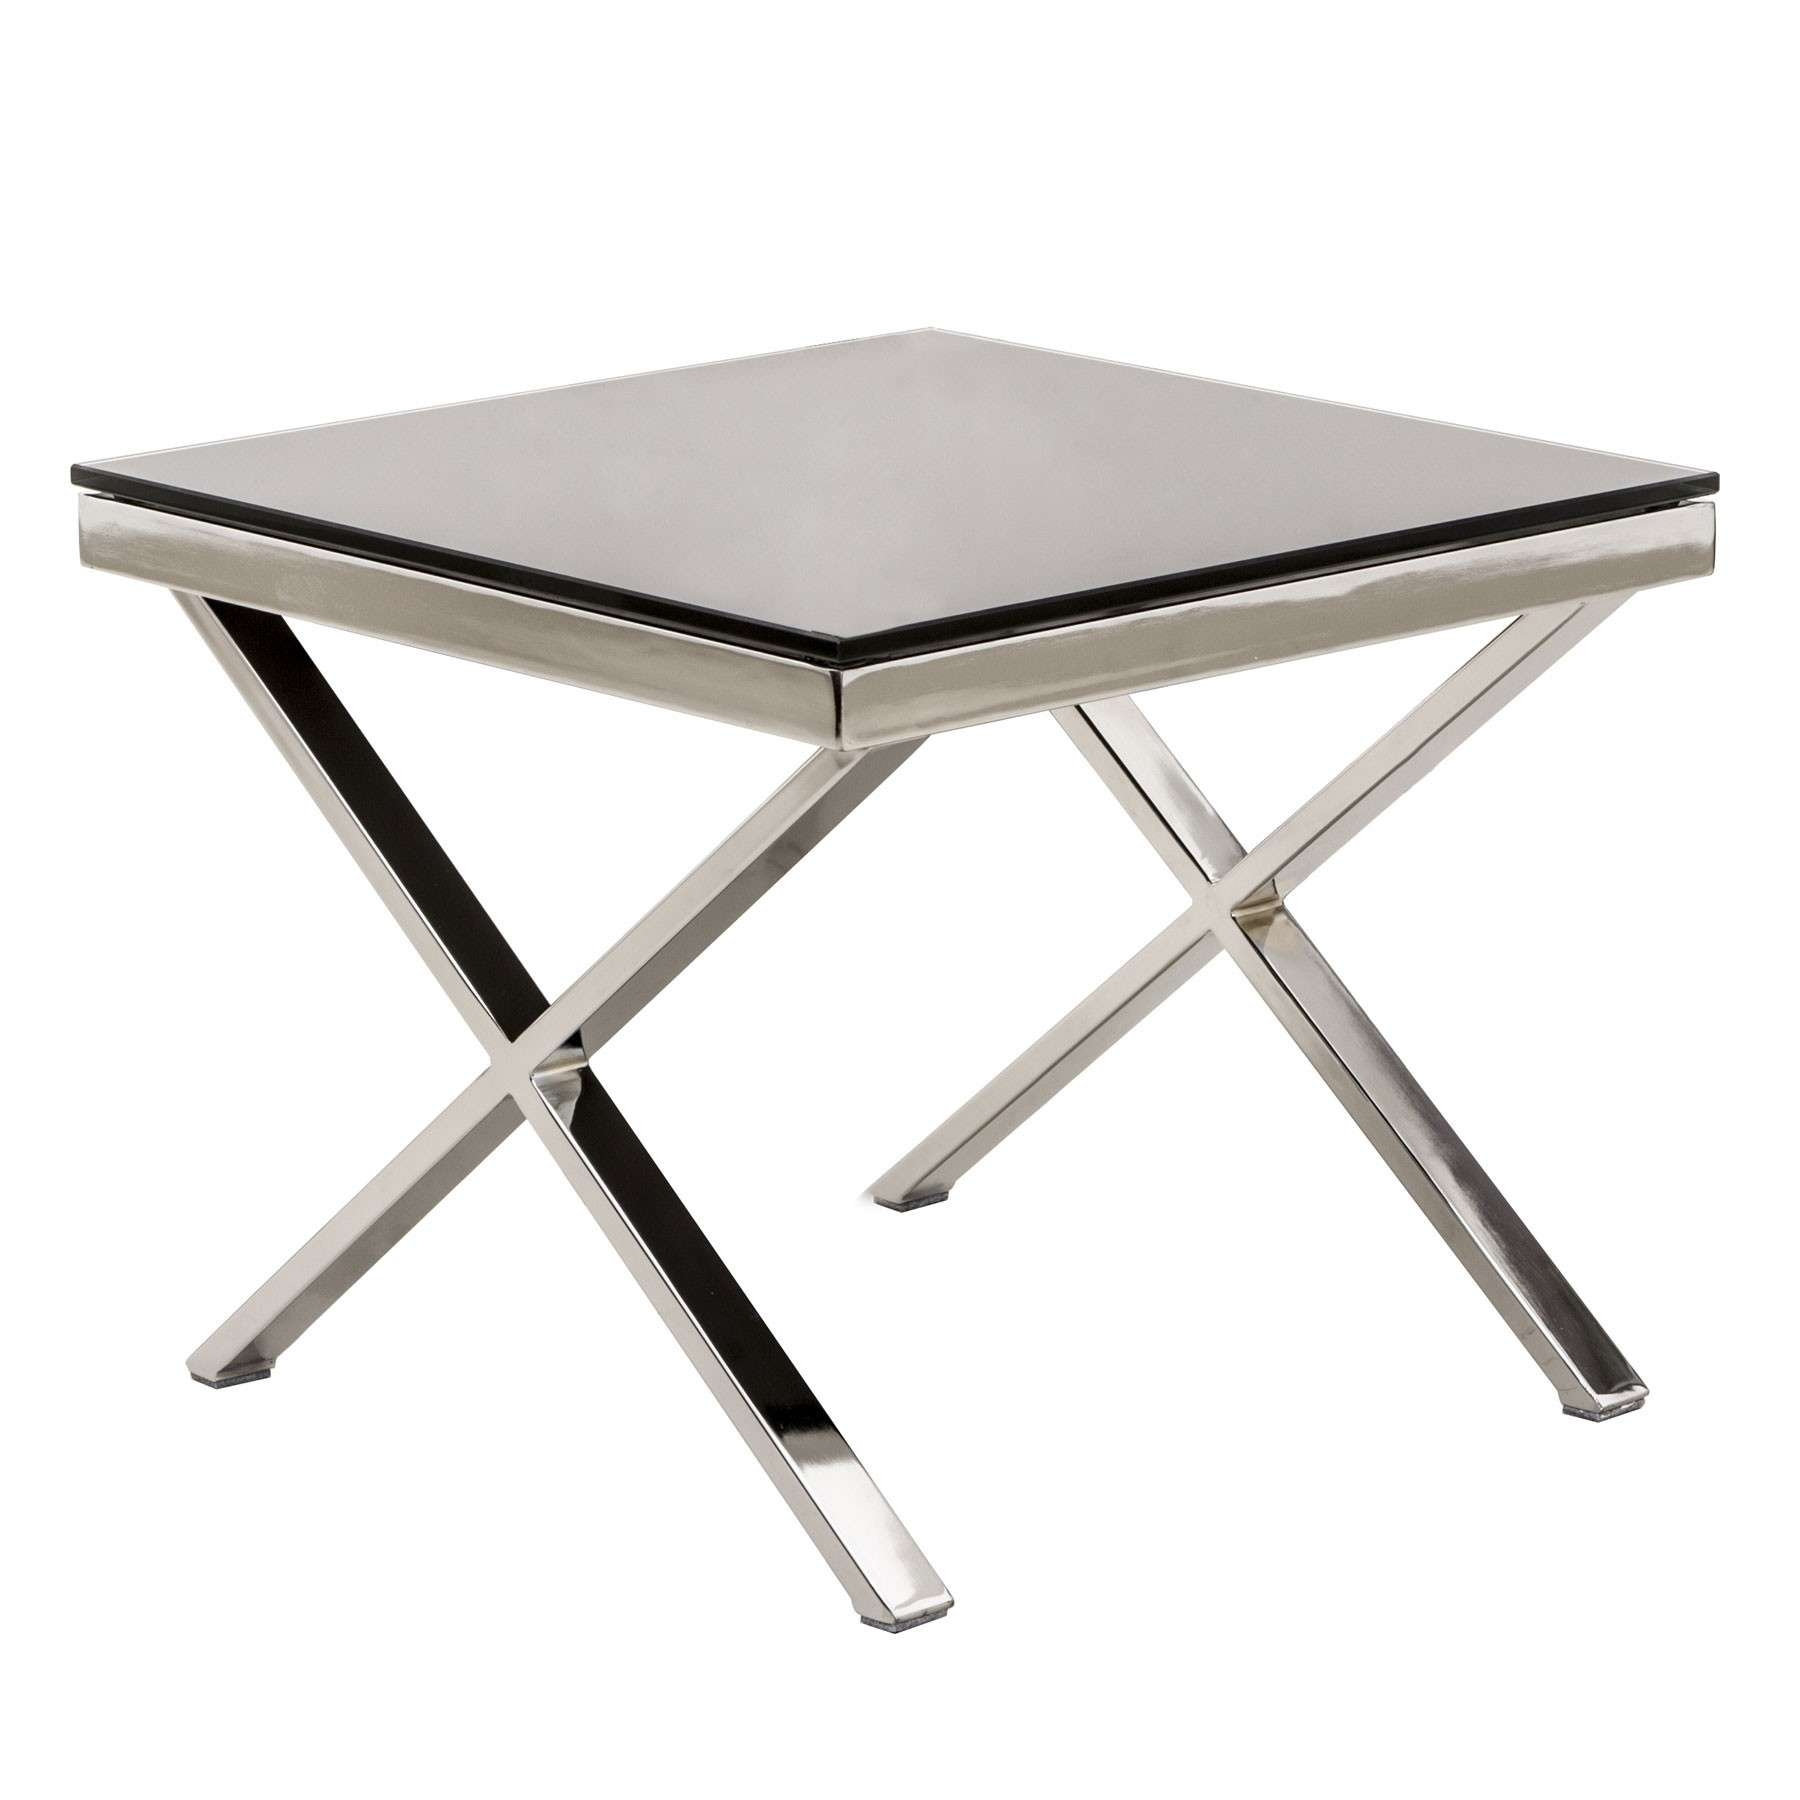 Most Popular Wood Chrome Coffee Tables Within Coffee Tables : Glass Chrome Coffee Table Rectangle Ikea Australia (View 10 of 20)